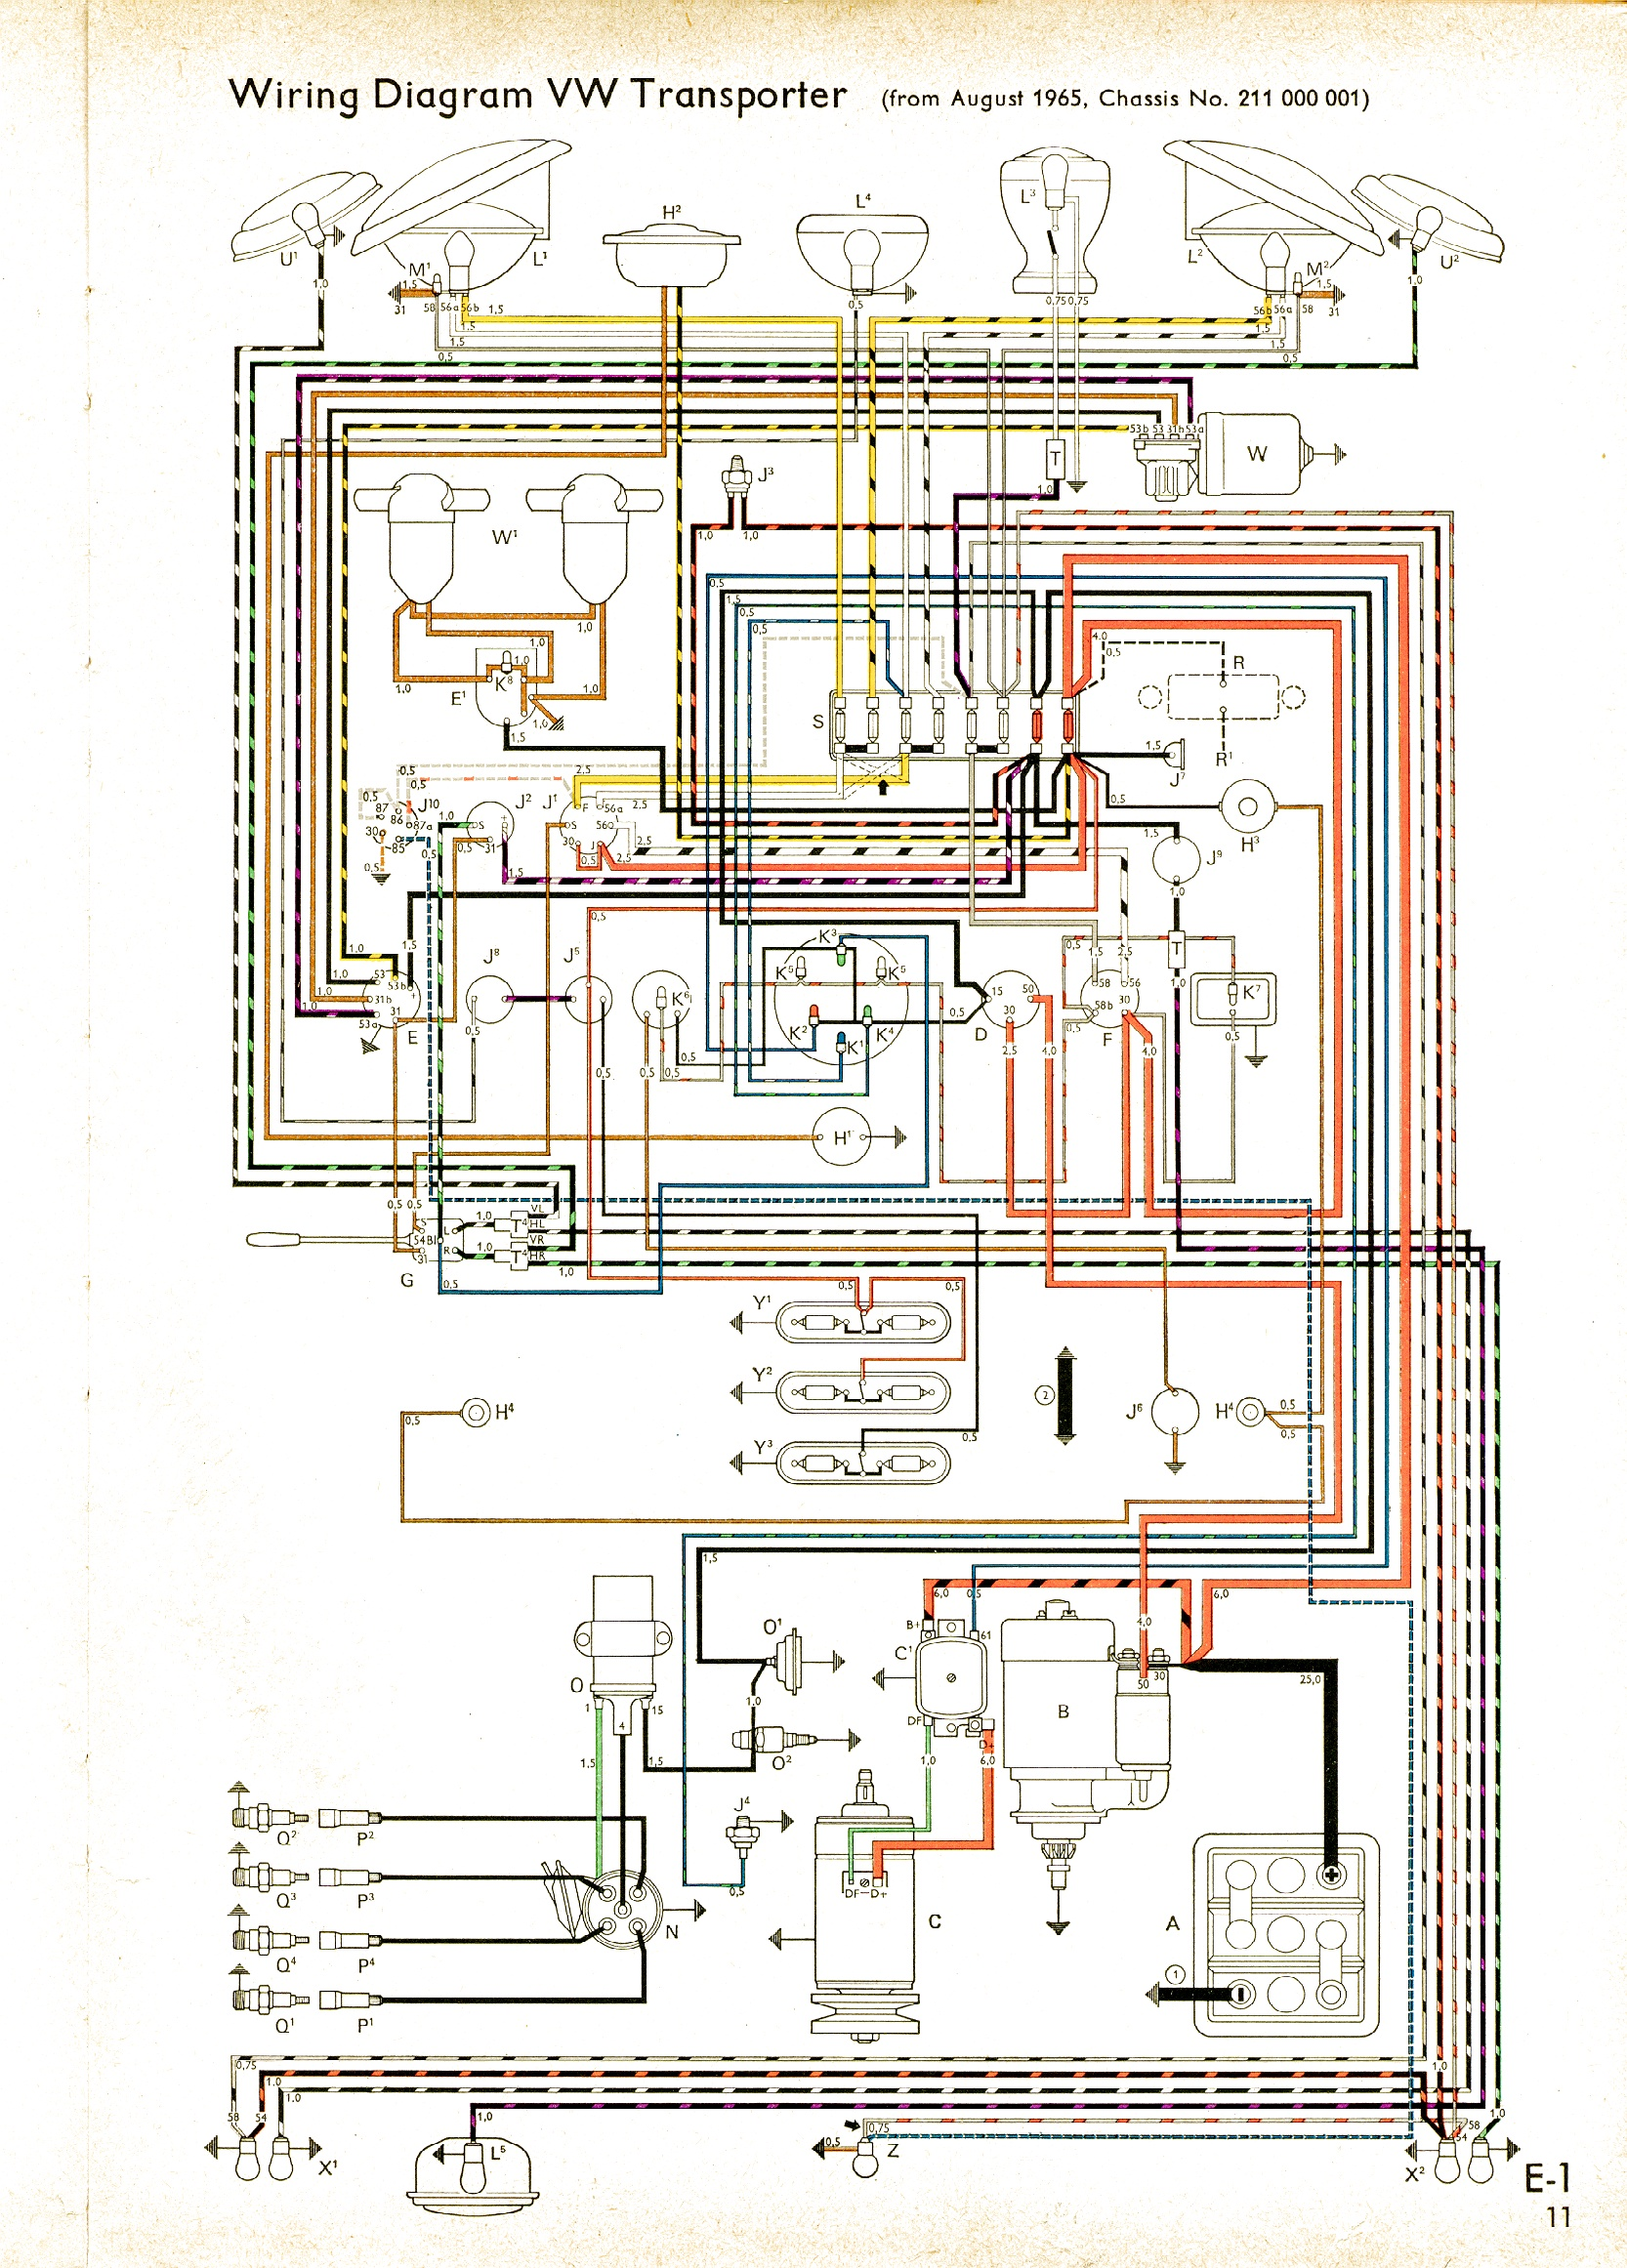 1967 vw beetle wiring diagram RIDAwNe 1967 vw bug wiring diagram on 1967 download wirning diagrams vw bug wiring diagram at bayanpartner.co